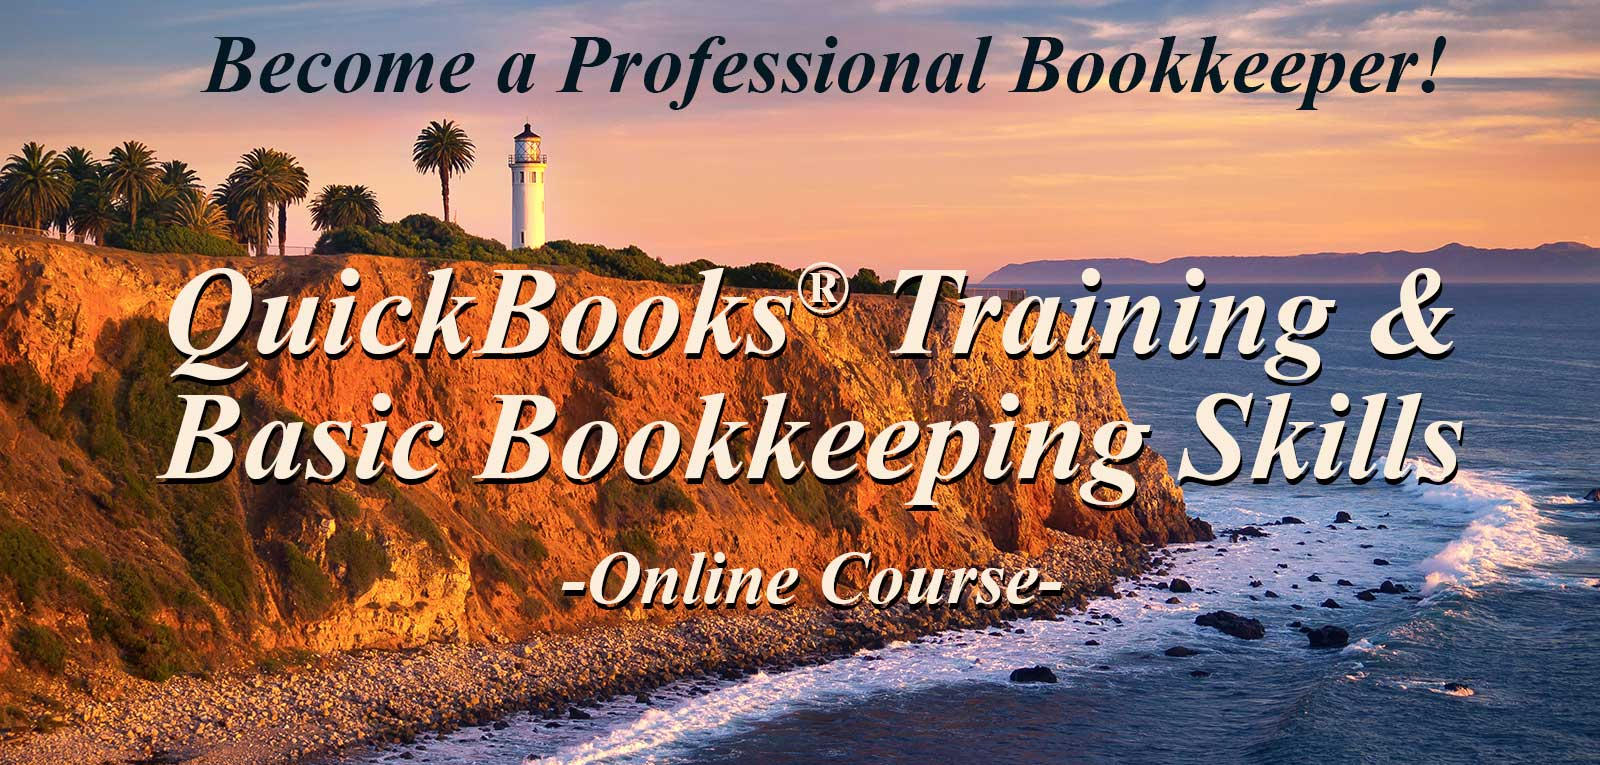 Banner: QuickBooks Training & Basic Bookkeeping Skills Online Course